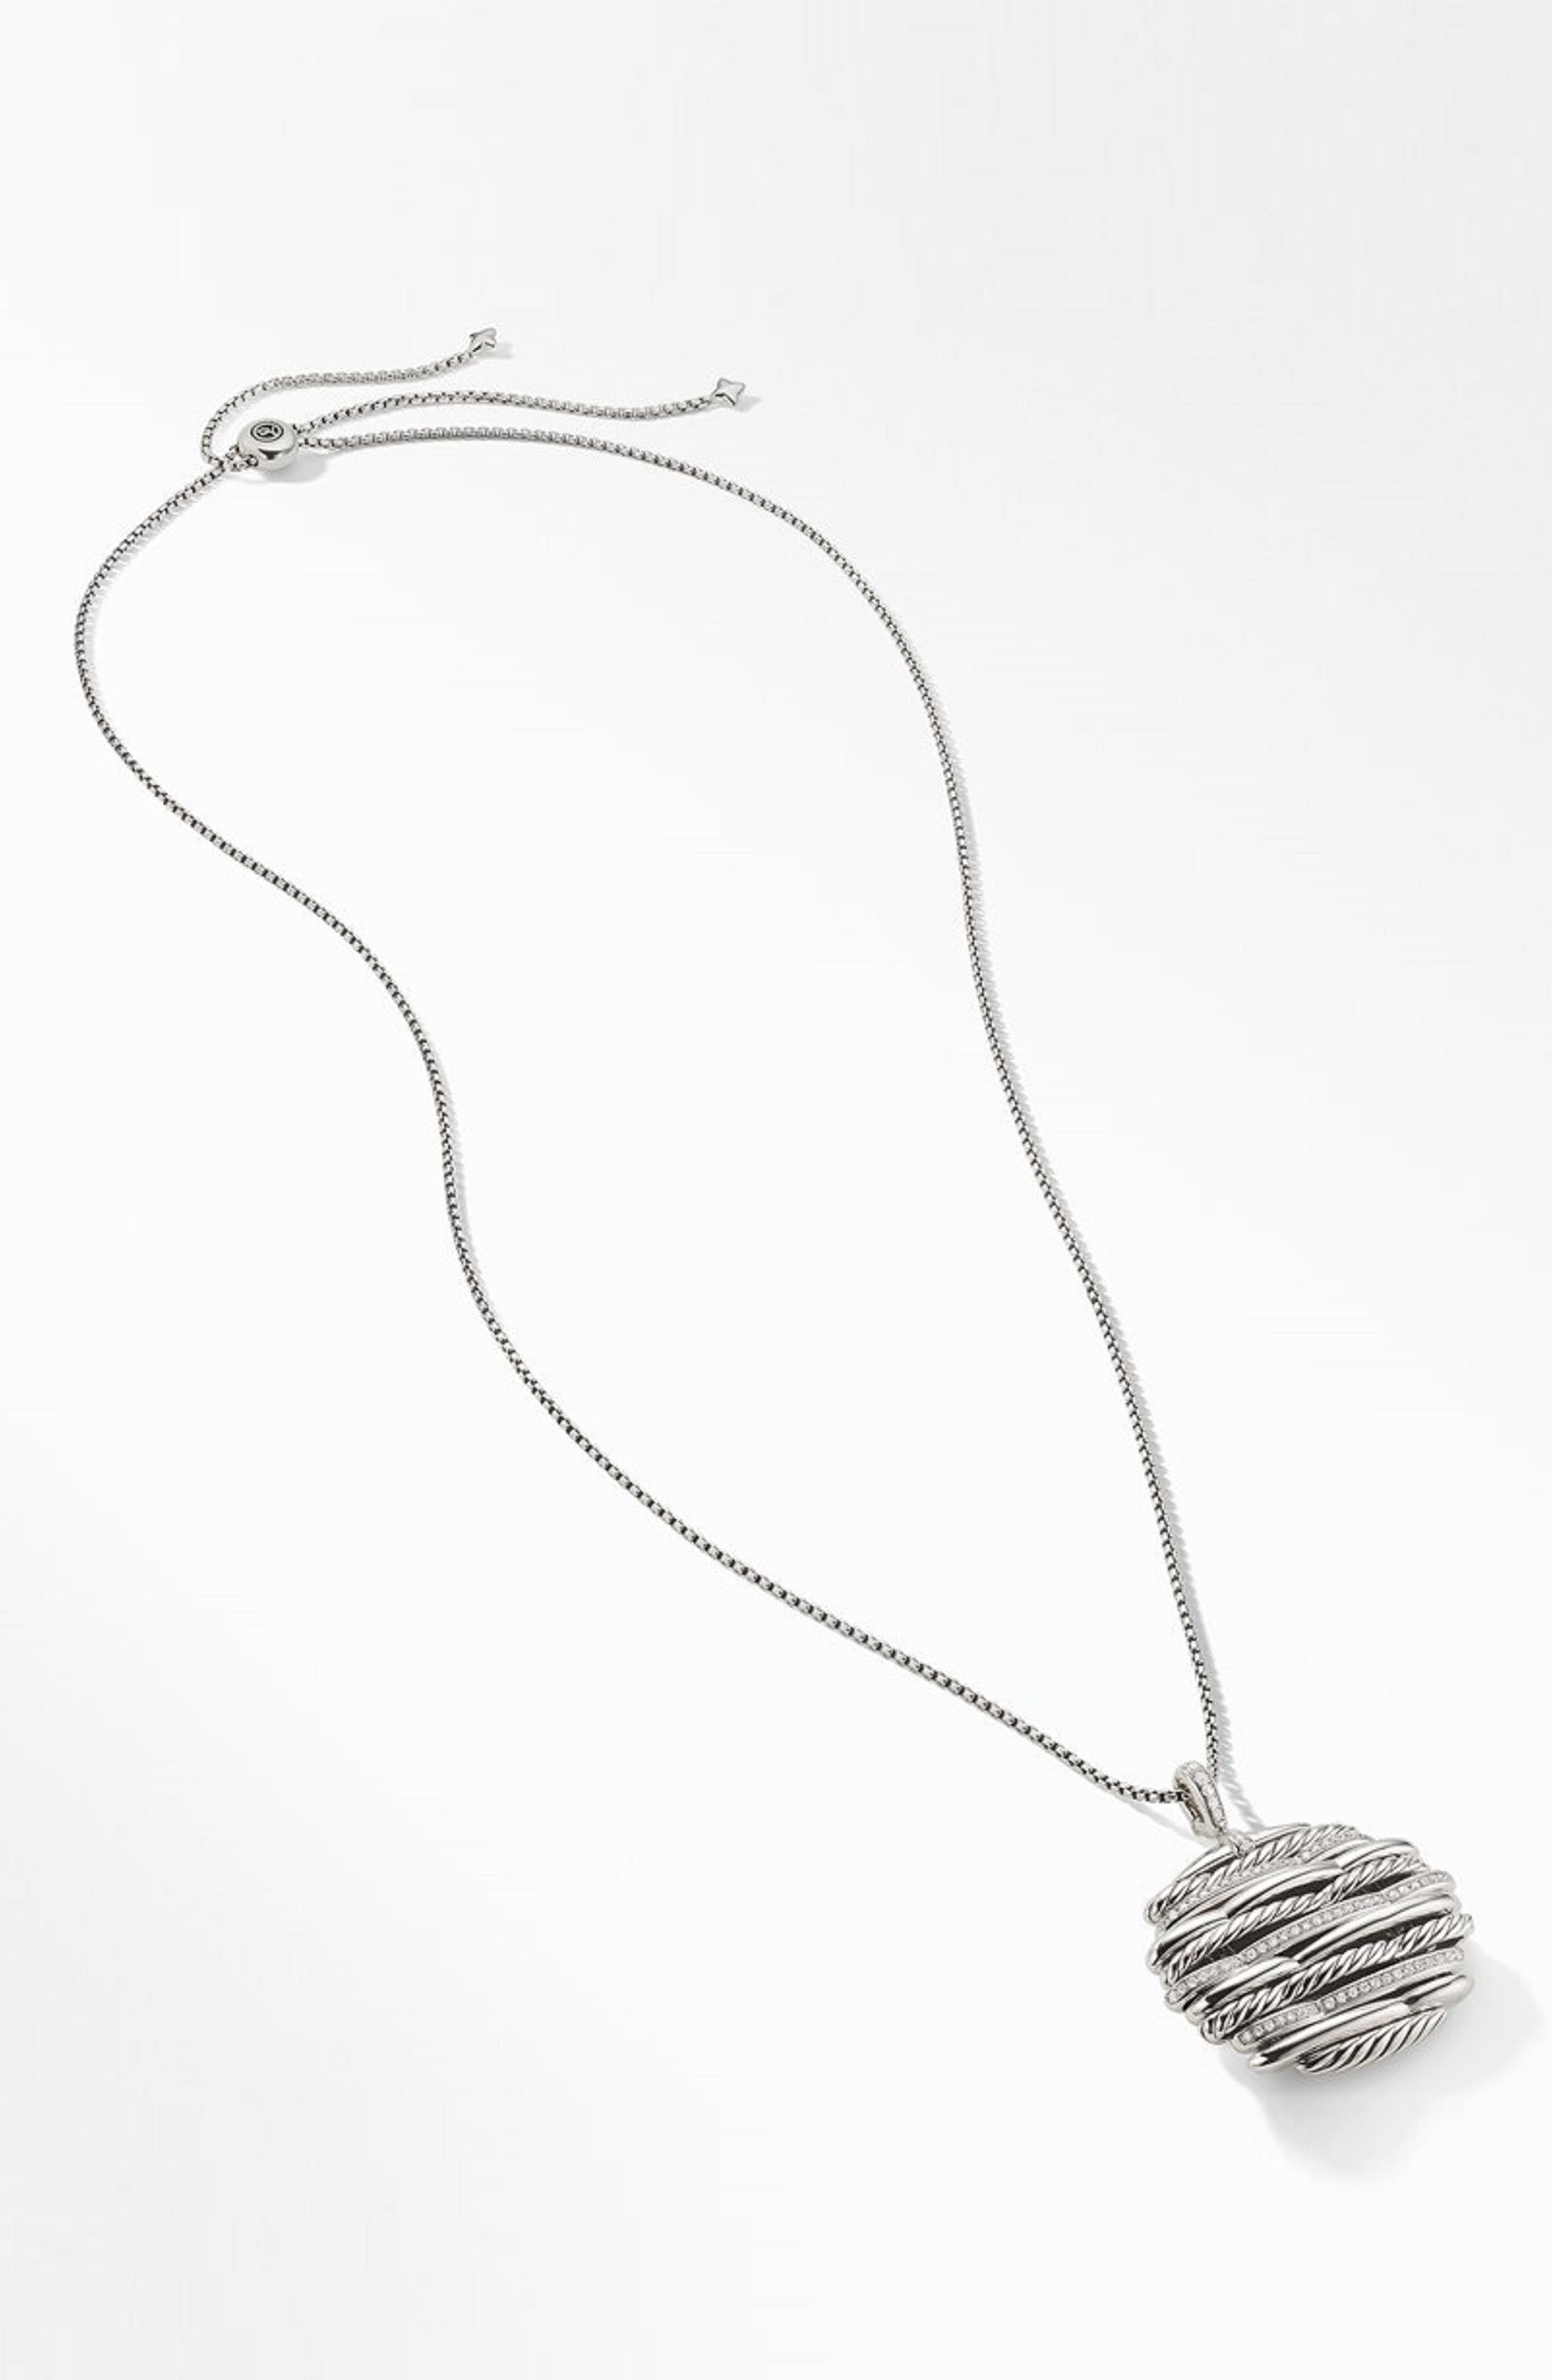 Tides Pendant Necklace with Diamonds,                             Alternate thumbnail 2, color,                             STERLING SILVER/ DIAMOND